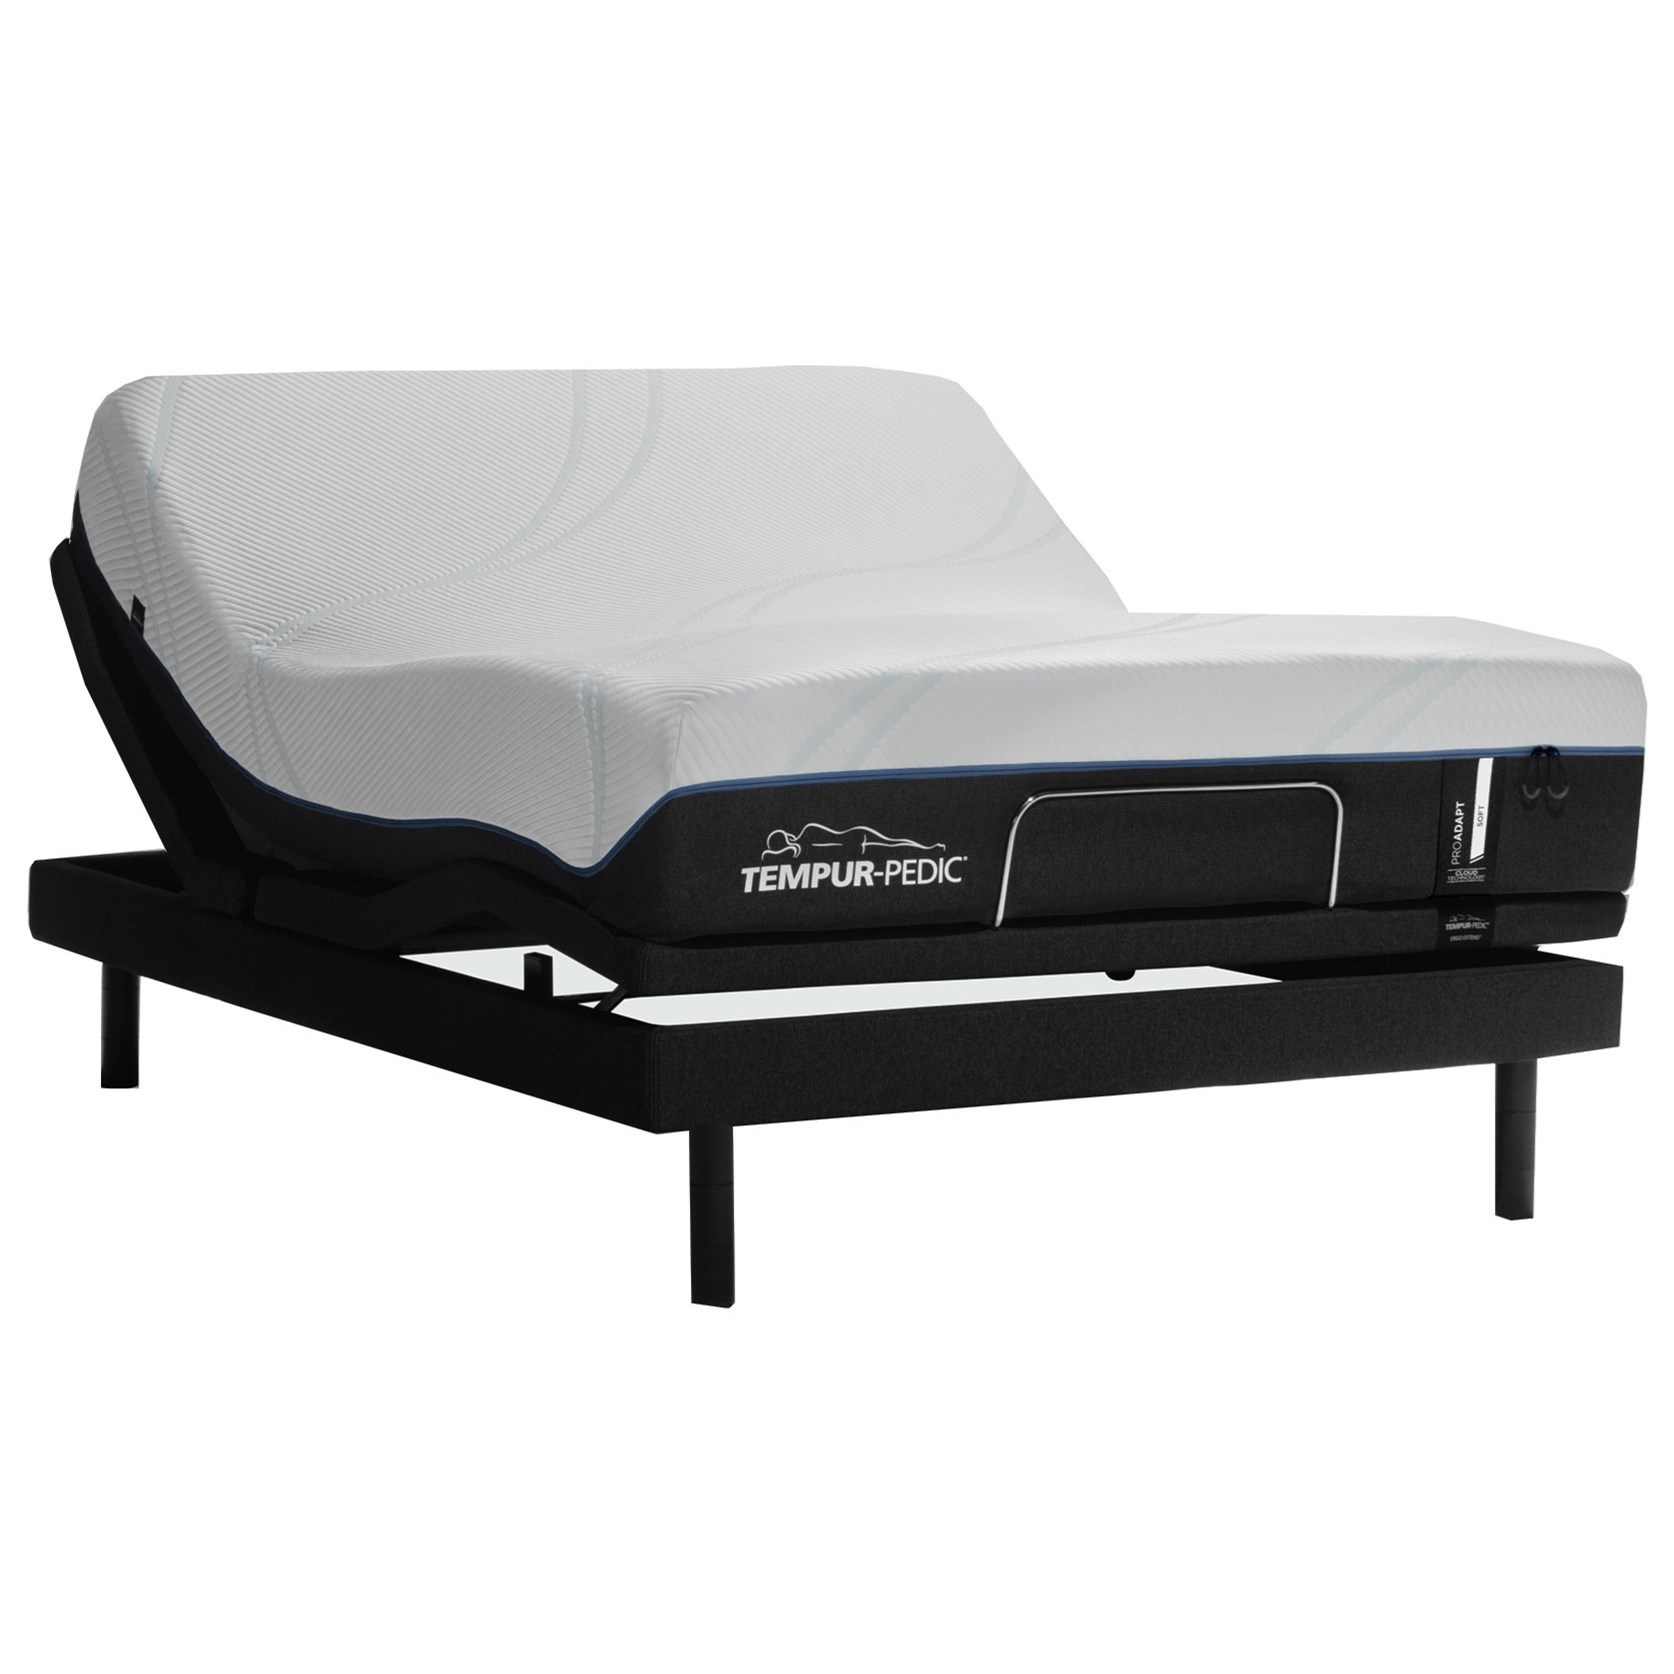 "TEMPUR-PROADAPT™ Plush Queen 12"" TEMPUR-PROADAPT™ Soft Adj Set by Tempur-Pedic® at SlumberWorld"